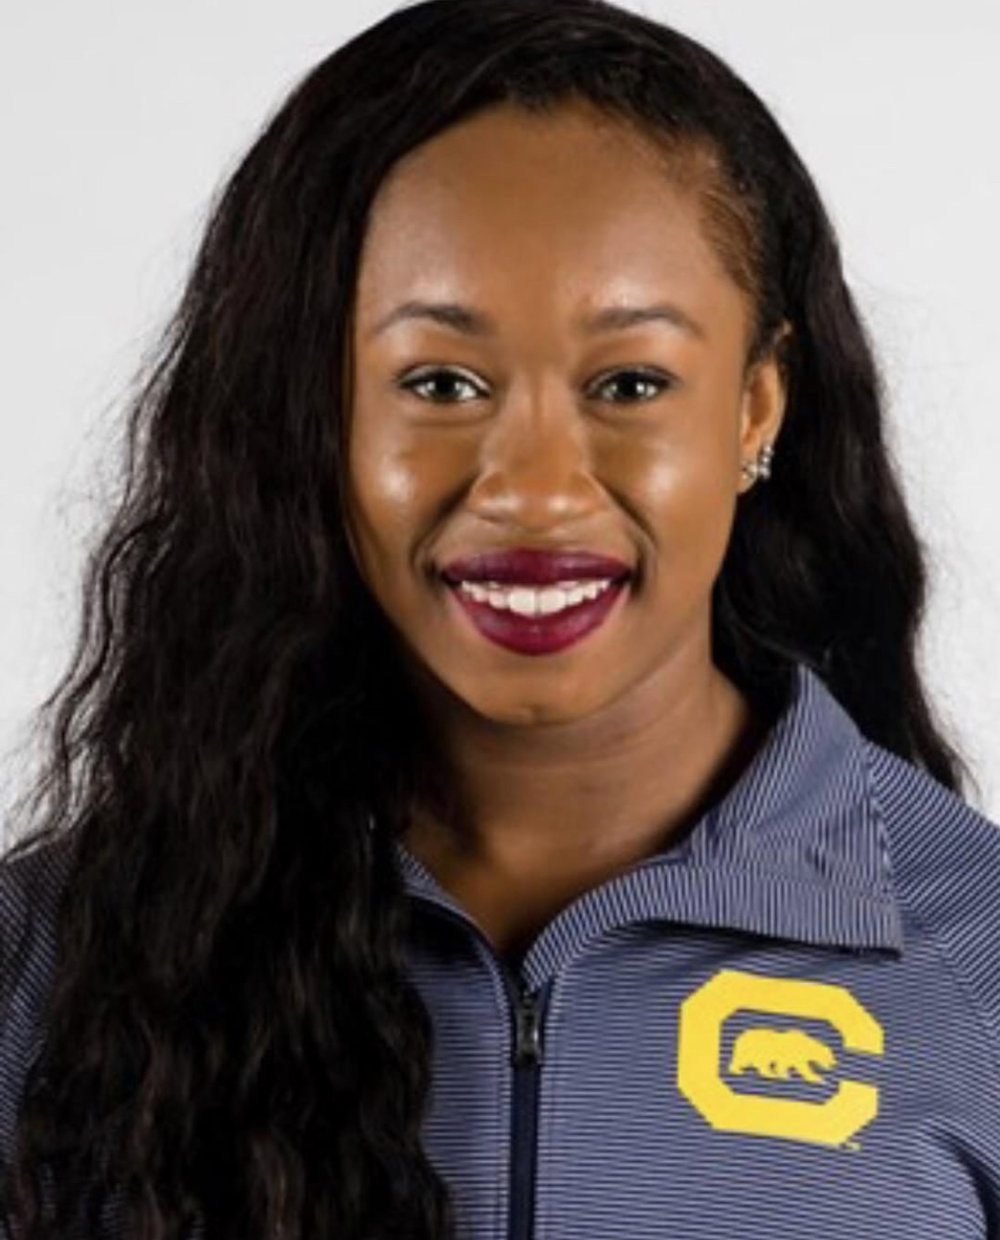 Toni-Ann Williams  - 2016 Olympian and UC Berkeley